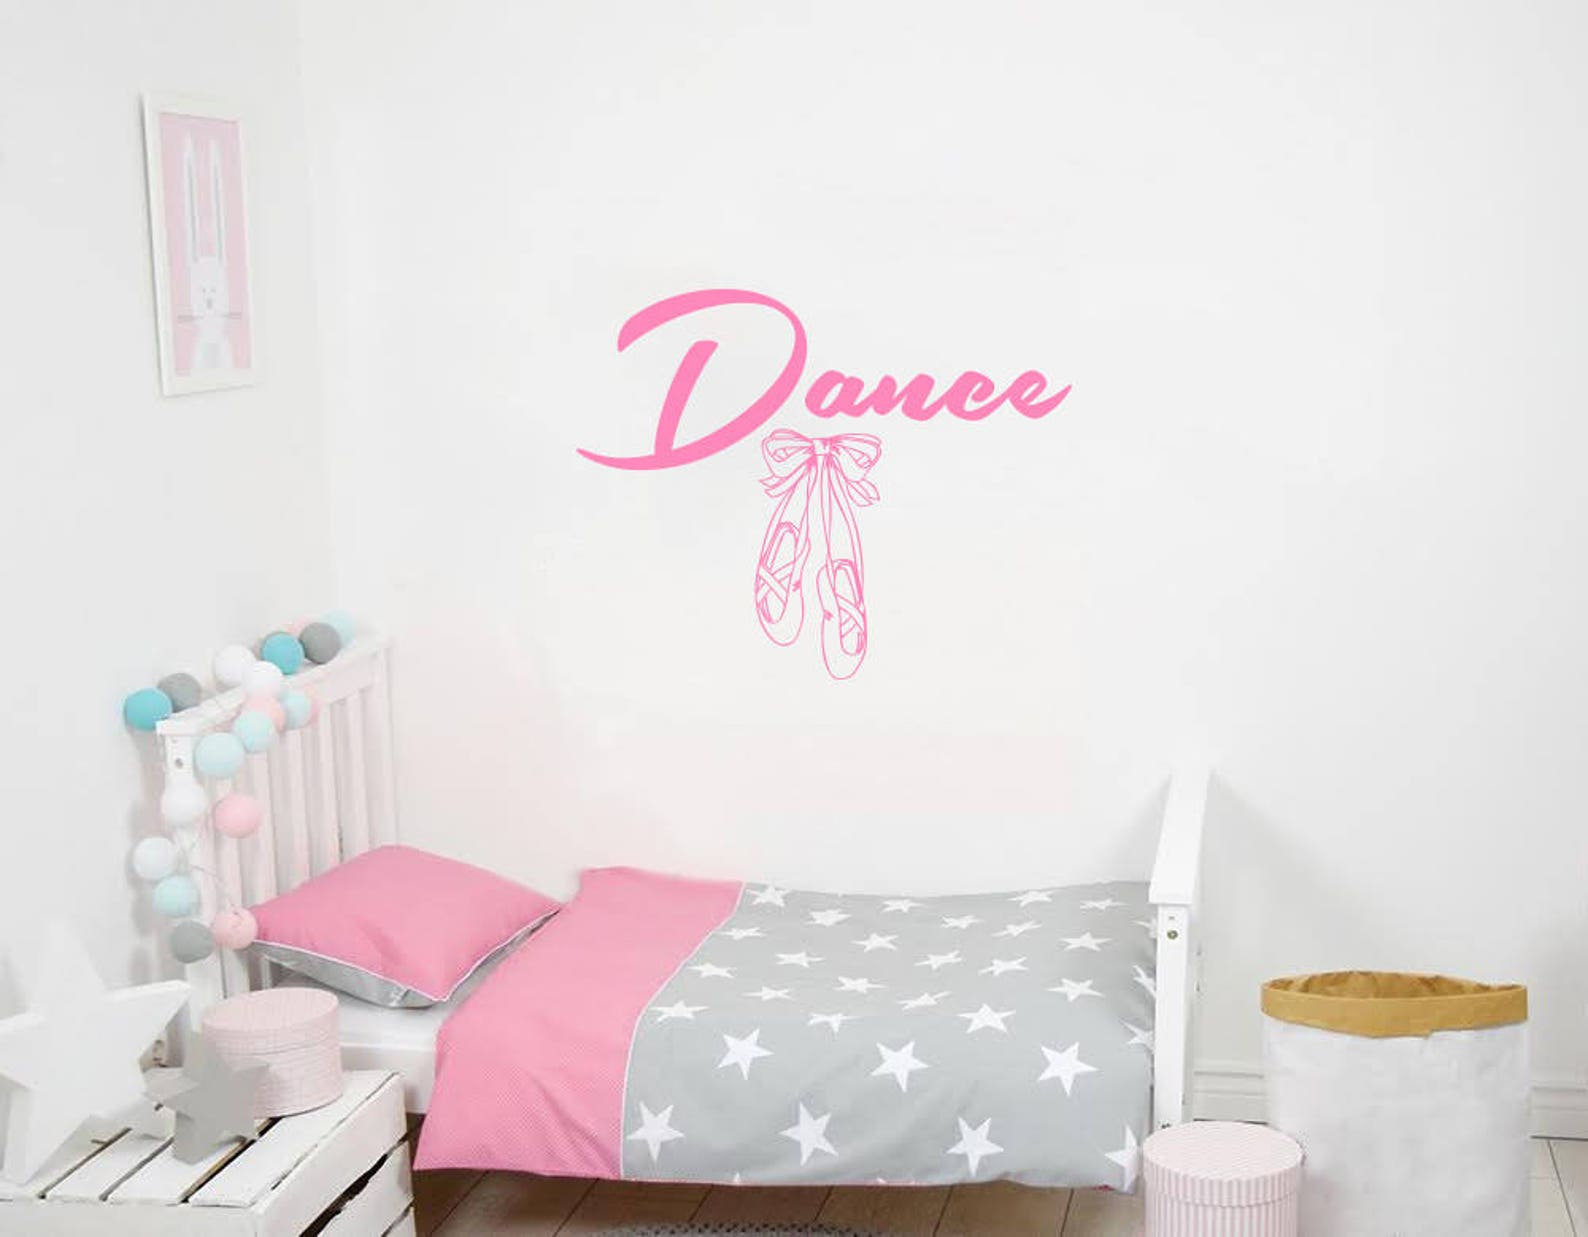 dance wall decal vinyl sticker decals ballet slipper shoes dancing ballerina wall decal quote wall decor dance studio decor nurs